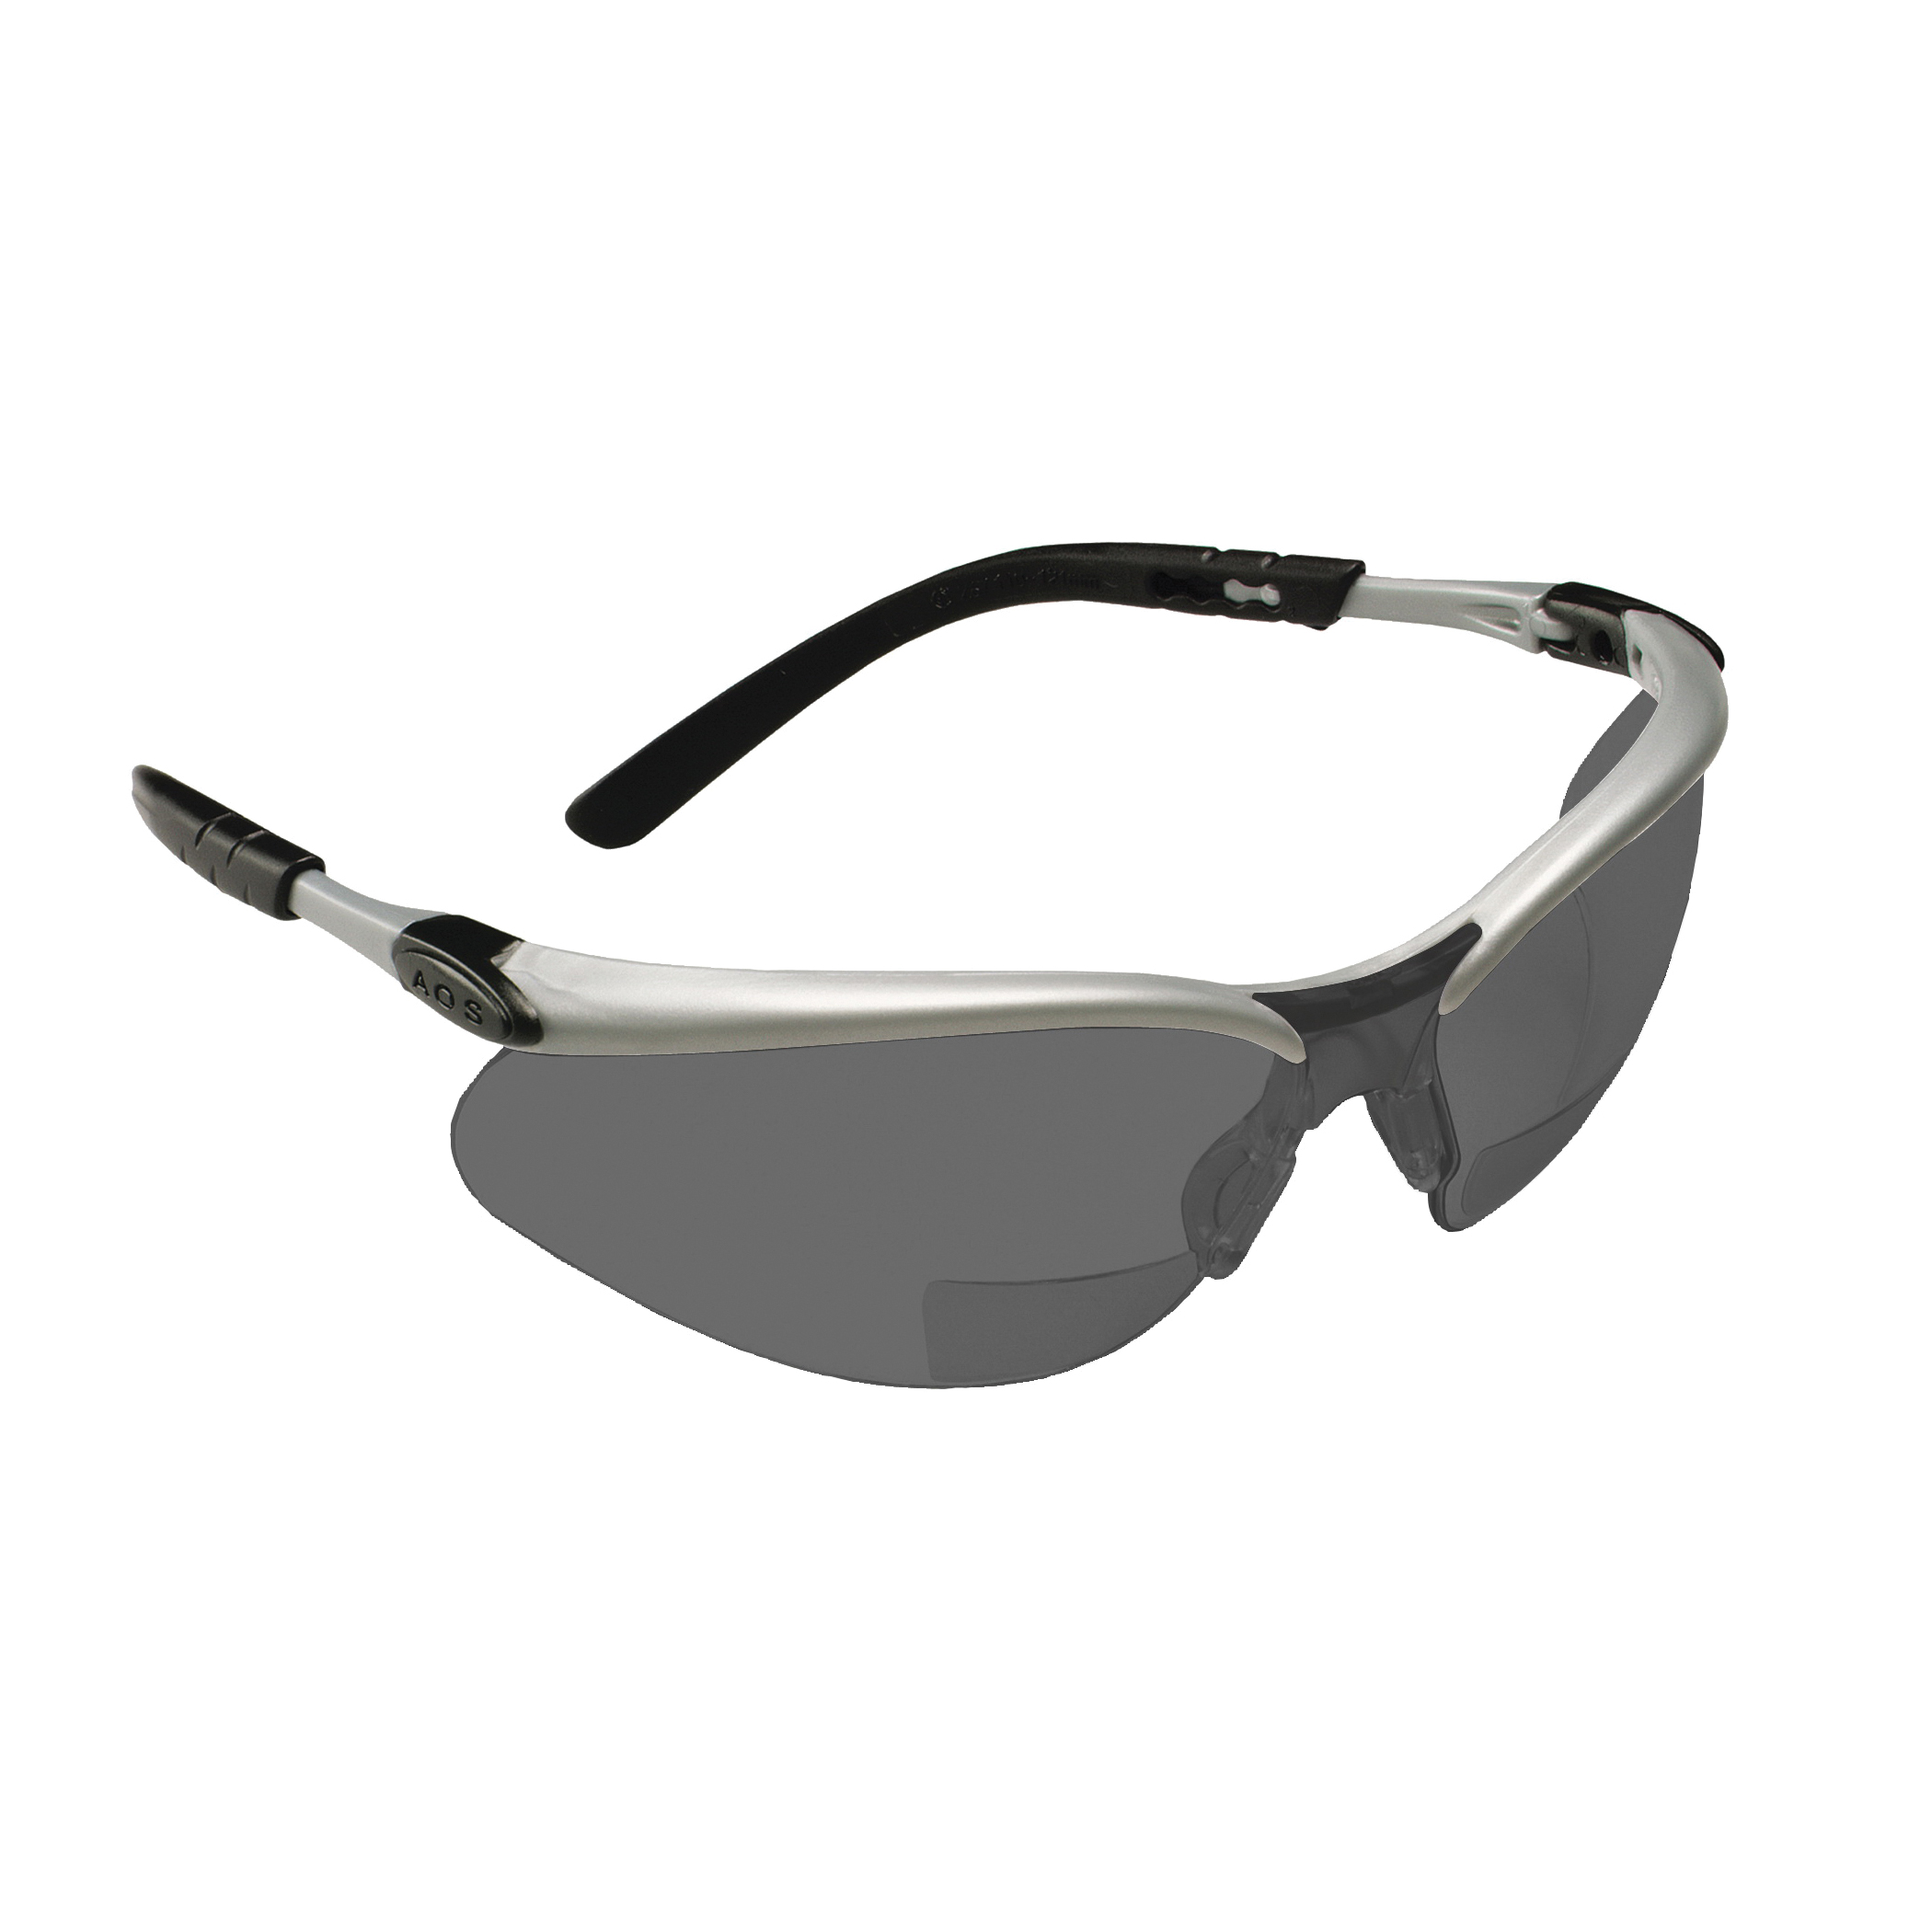 3M™ BX™ 078371-62051 11379-00000-20 Bi-Focal Lens Lightweight Reader Protective Eyewear, 2.5 Diopter, Gray Lens, Black/Silver Plastic Frame, Polycarbonate Lens, 99.9% UV Protection, Specifications Met: ANSI Z87.1-2015, CSA Z94.3-2007